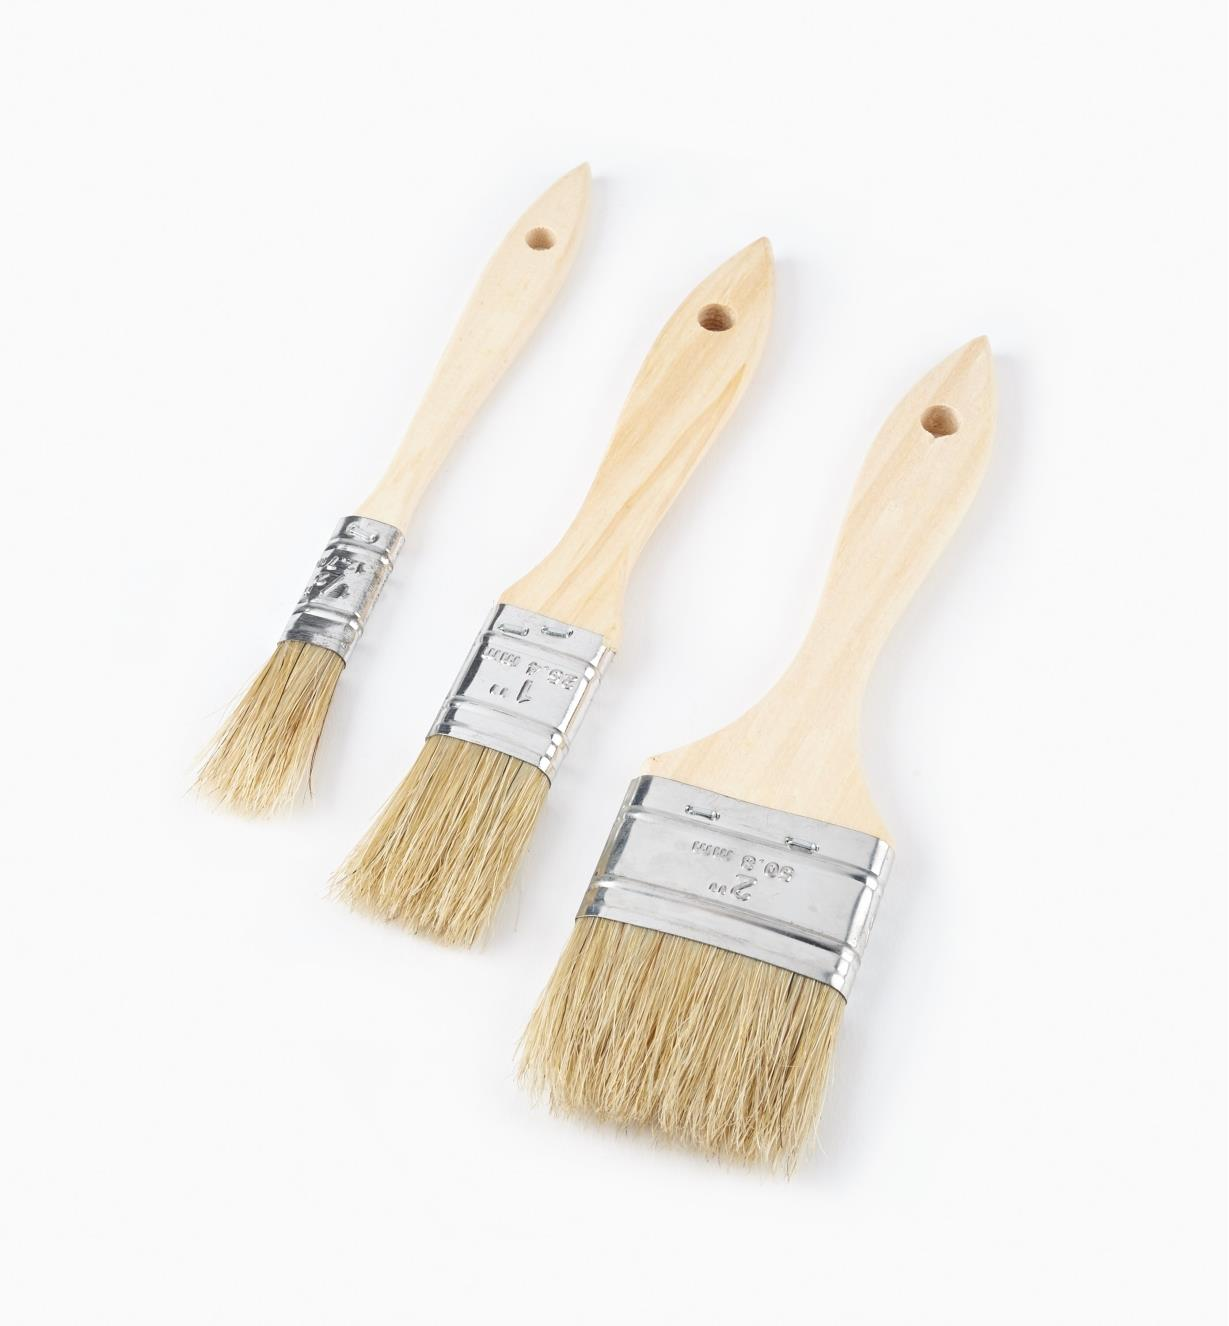 56z9930 - Set of 30 Bristle Brushes